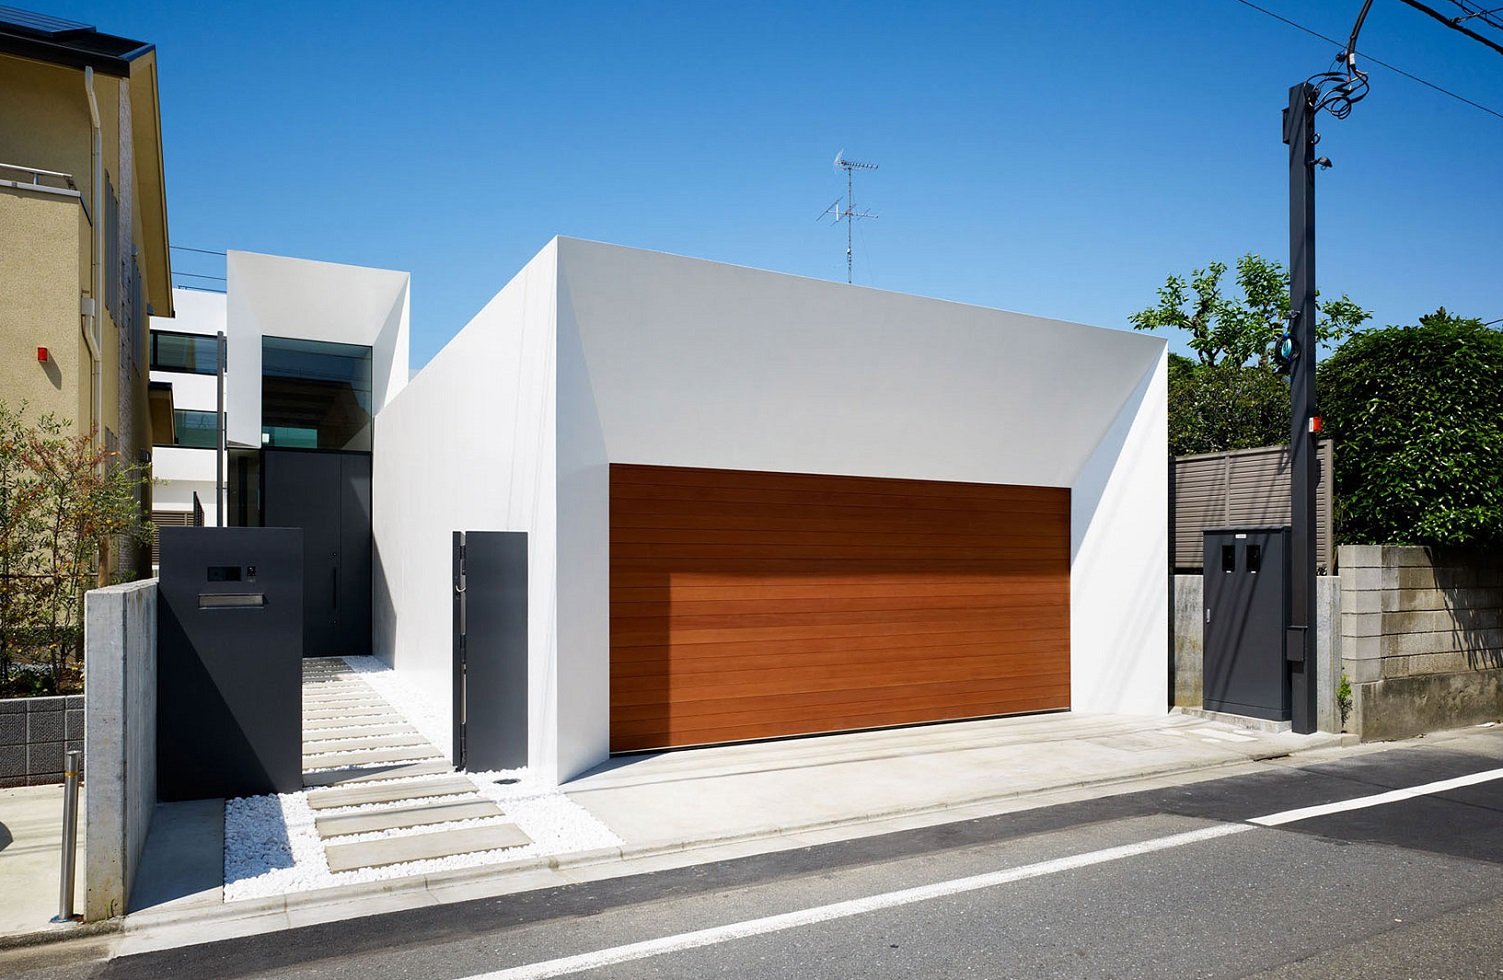 1000 images about fachadas on pinterest modern houses for Design casa moderna